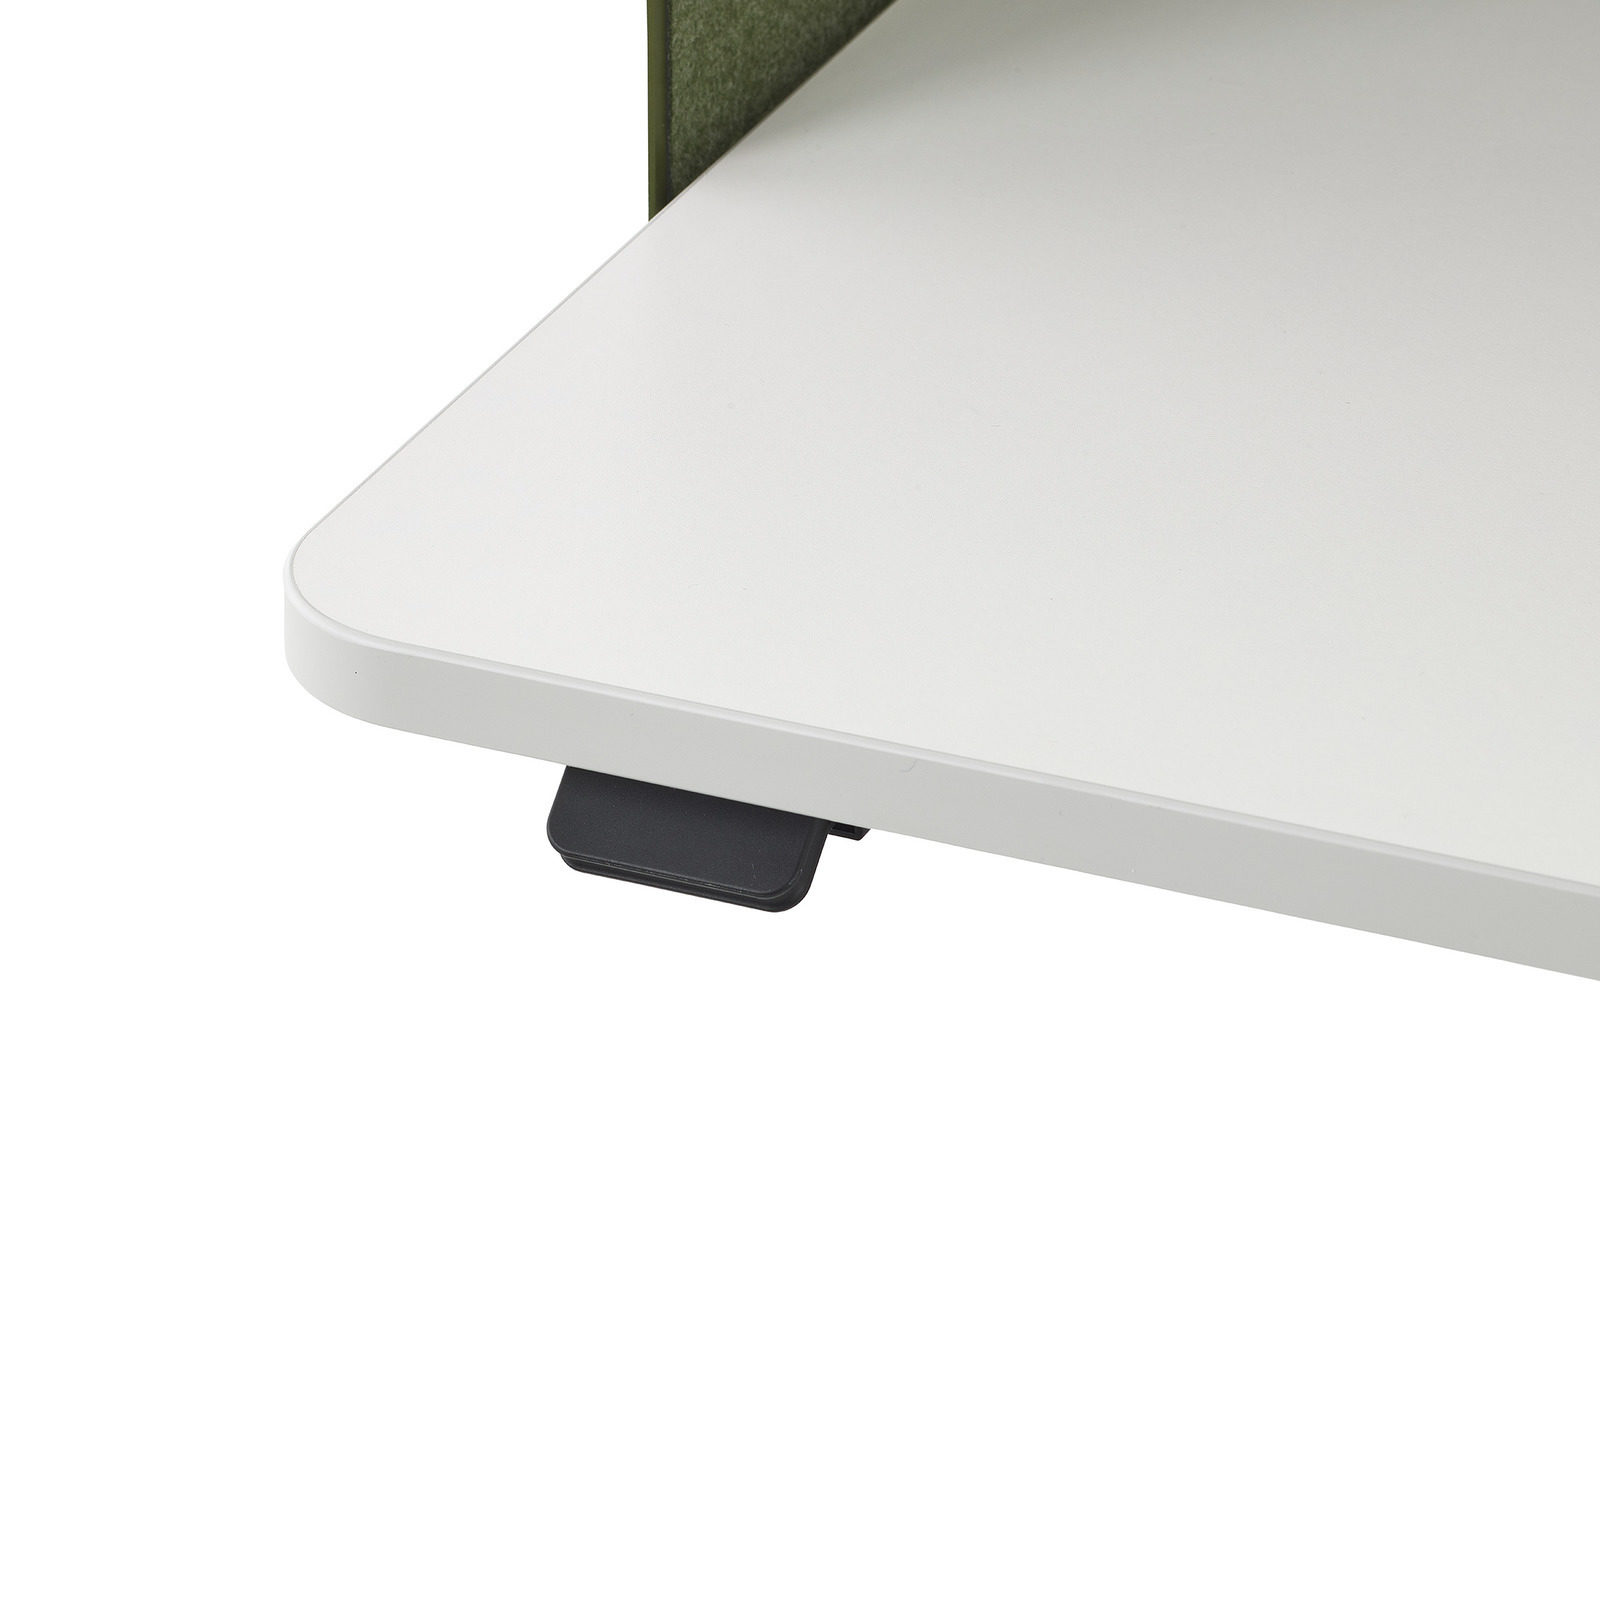 A close up image of the switch on an OE1 Micro Pack that can be used to raise and lower the work surface.